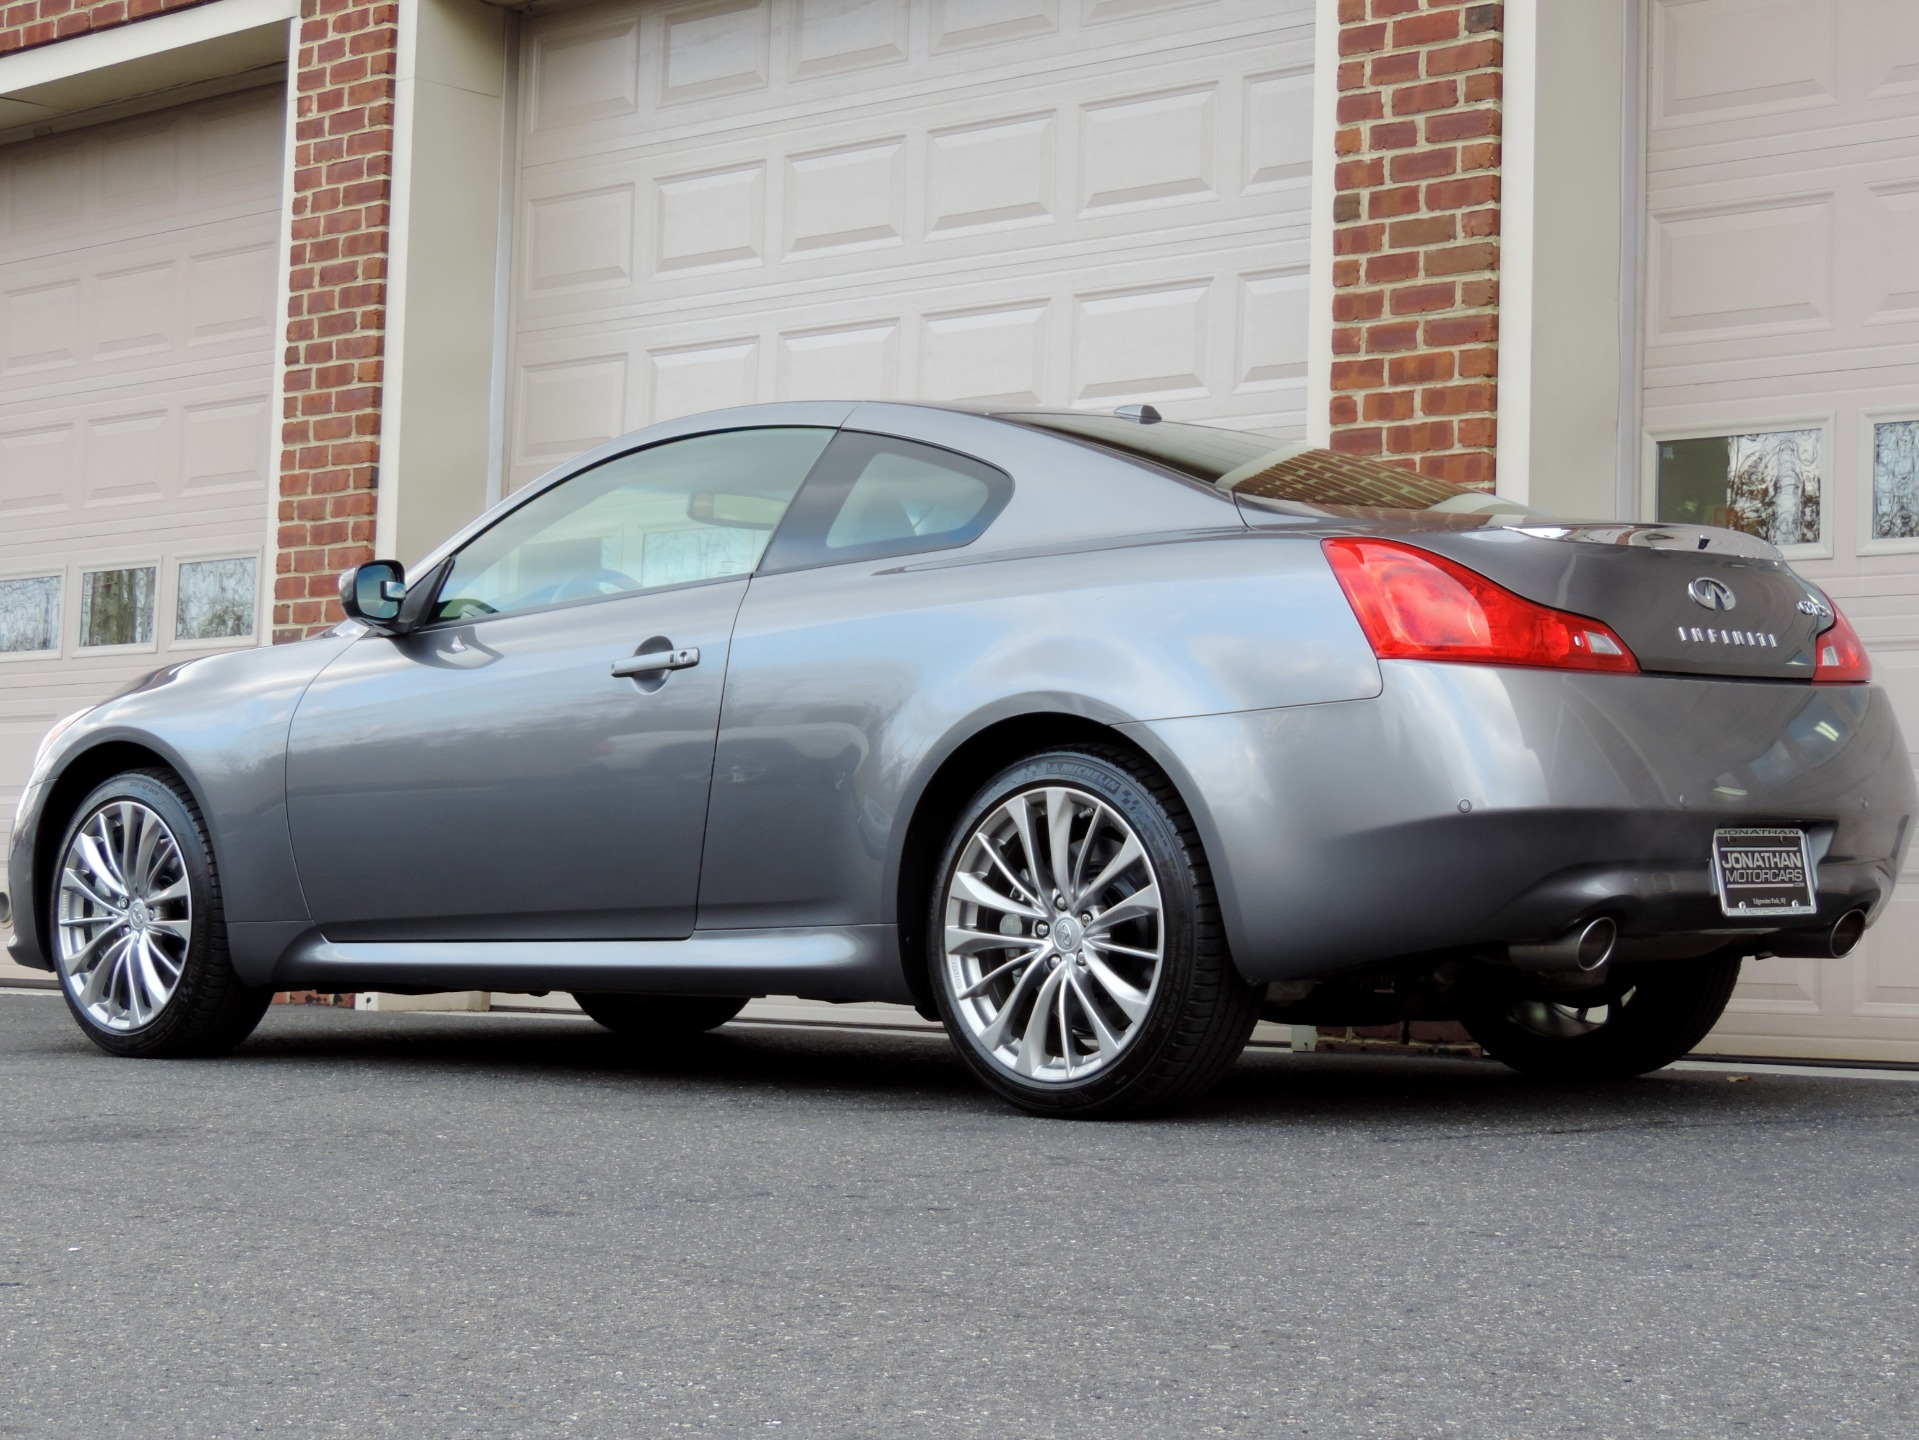 2012 Infiniti G37 Coupe X Awd Sport Pkg Stock 472930 For Sale Near Edgewater Park Nj Nj Infiniti Dealer